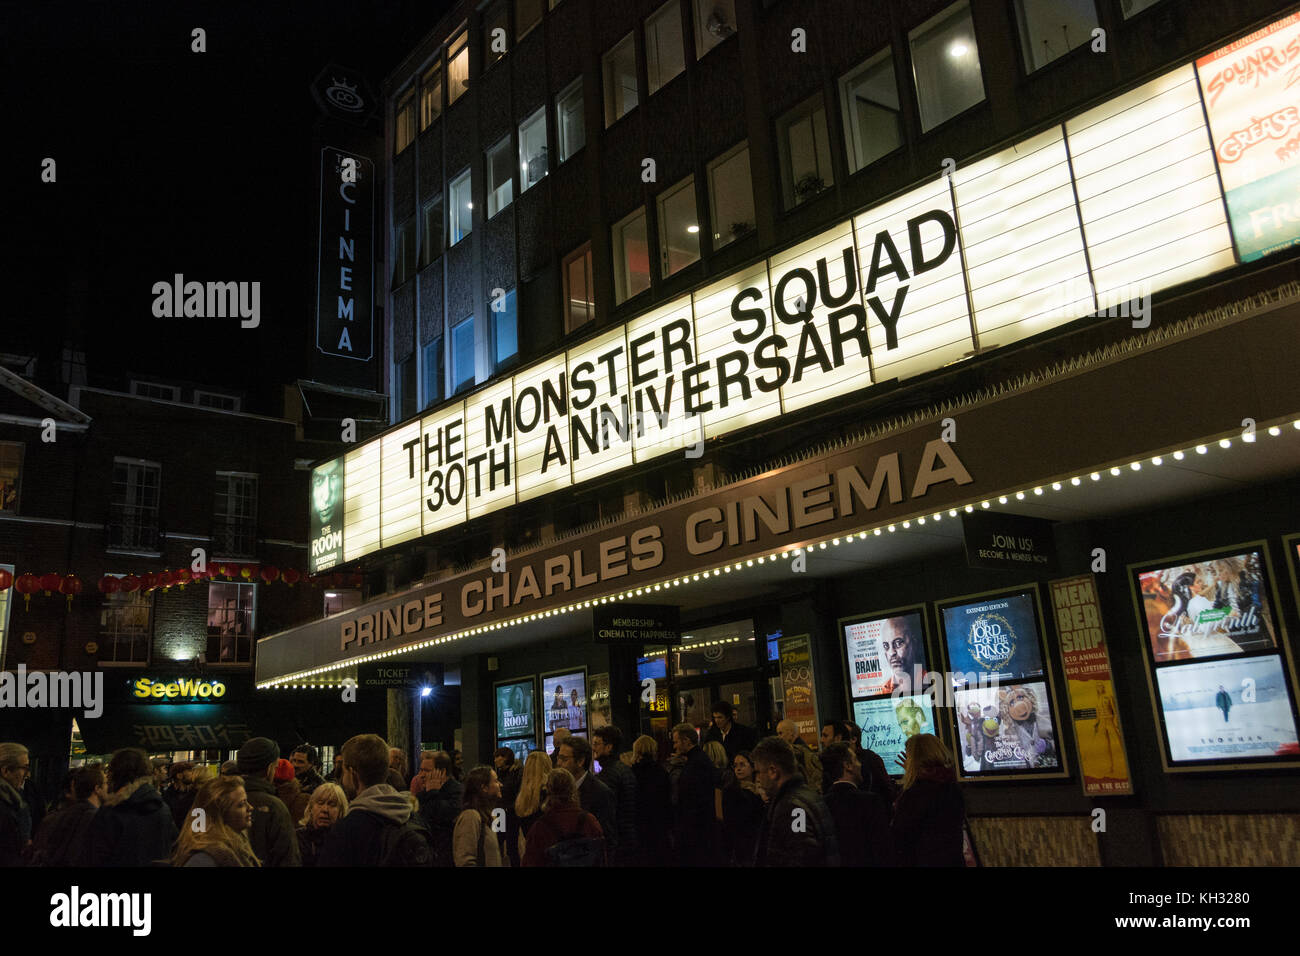 The Monster Squad at Prince Charles Cinema, off Leicester Square, in London's West End, UK - Stock Image